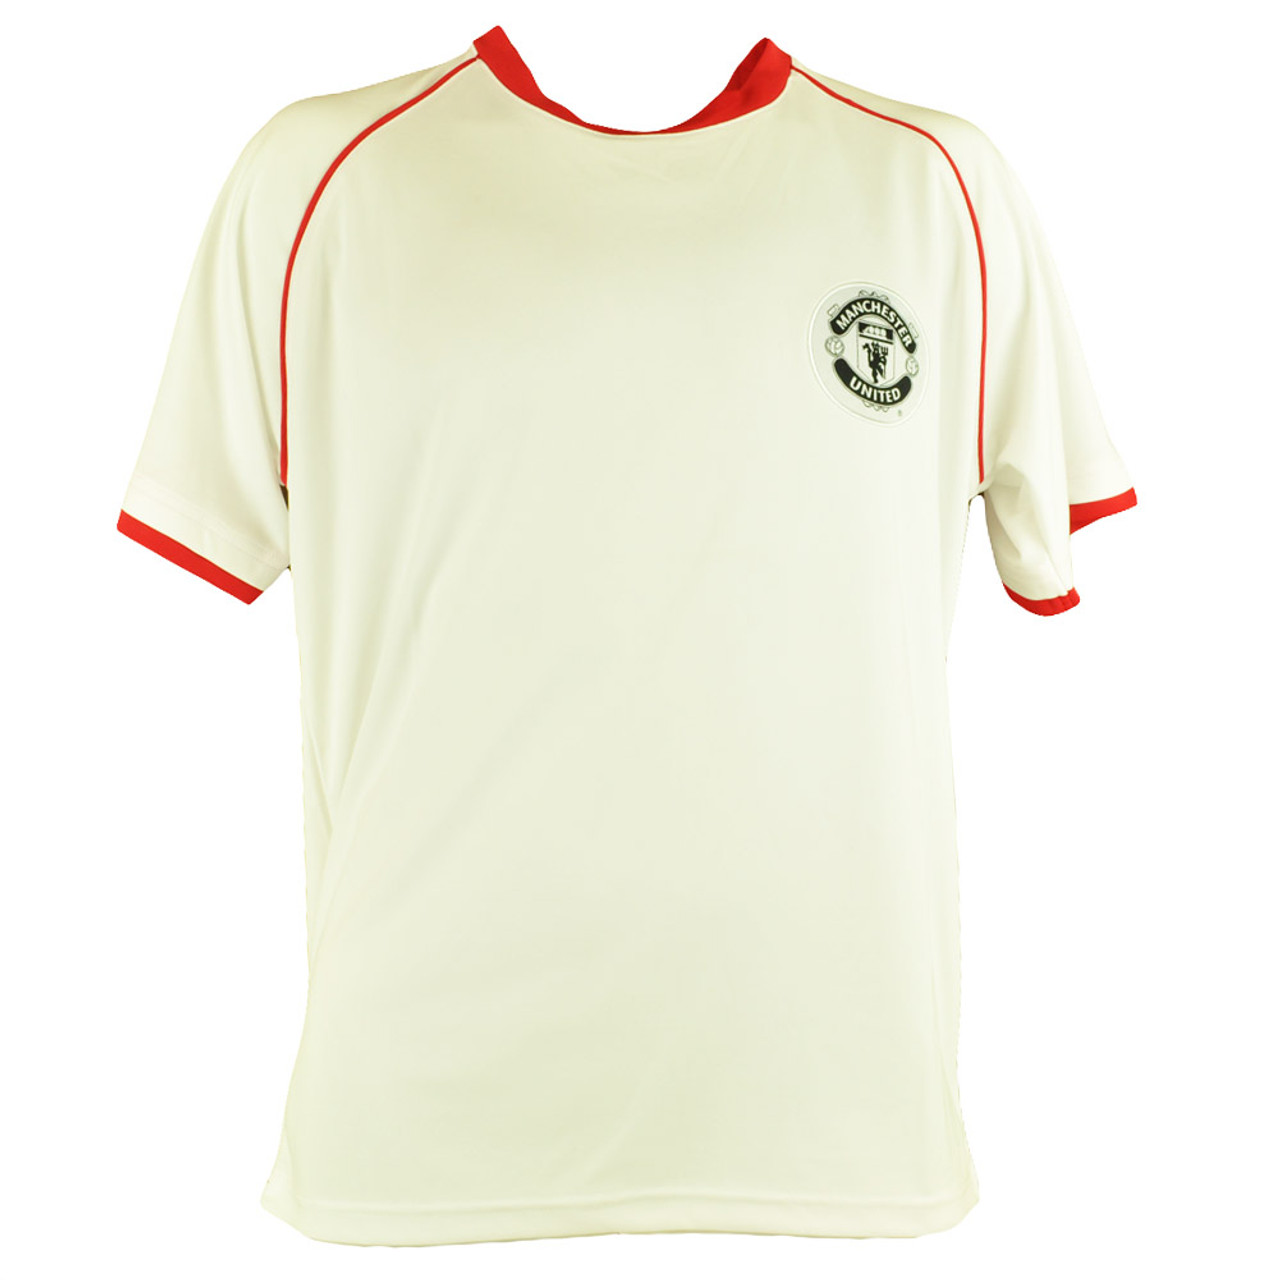 wholesale dealer 7ce21 c7a24 Rhinox Official AON Manchester United Training Soccer Away Jersey T2F02